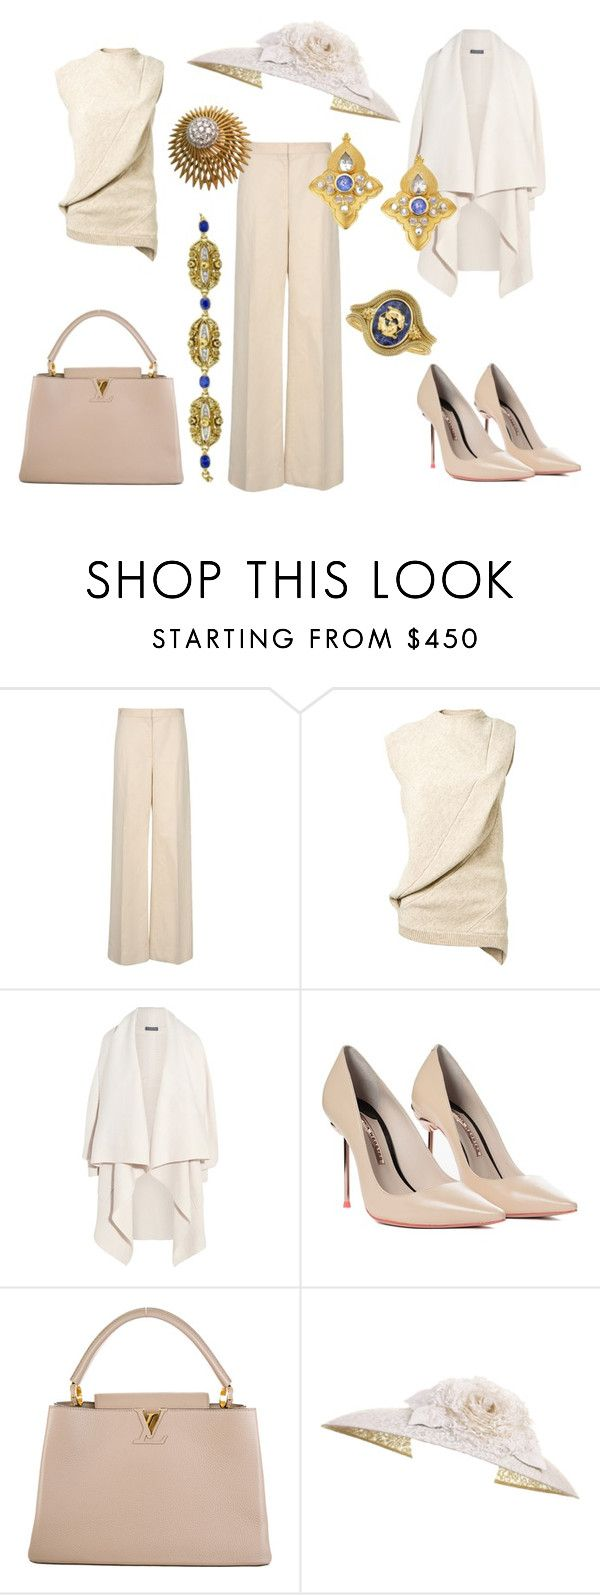 State Visit to Argentina Day 3: Morning by queenalex on Polyvore featuring мода, Alexander McQueen, Victoria Beckham, STELLA McCARTNEY, Sophia Webster, Louis Vuitton and Van Cleef & Arpels